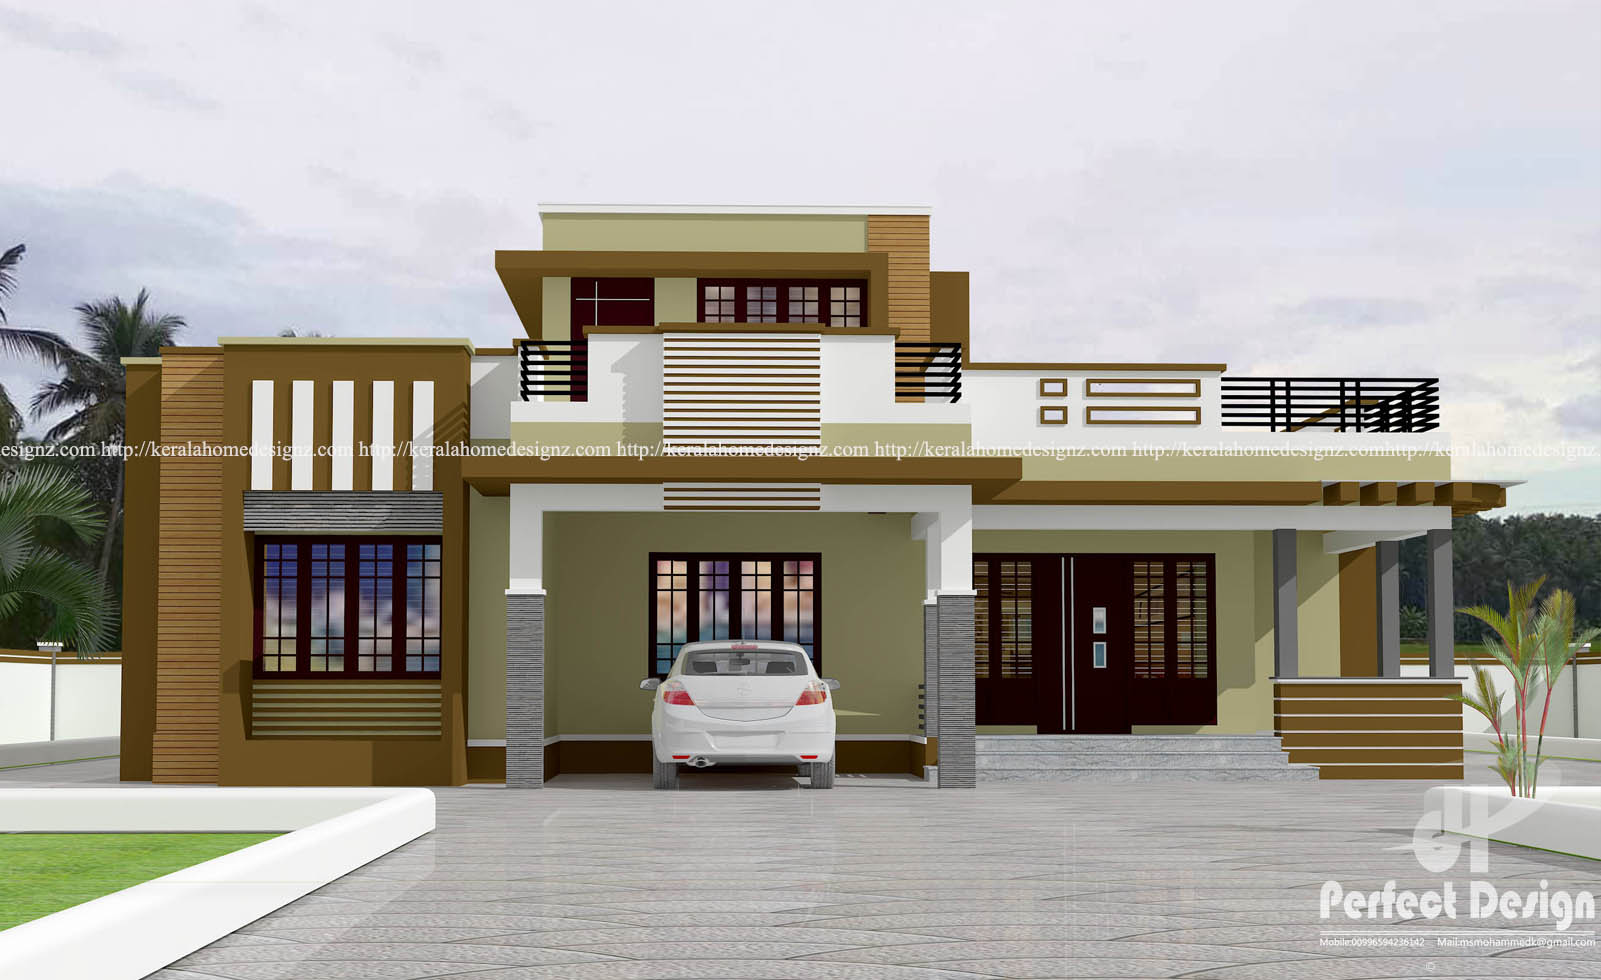 3 bedroom contemporary home design pinoy eplans for Eplans contemporary house plans